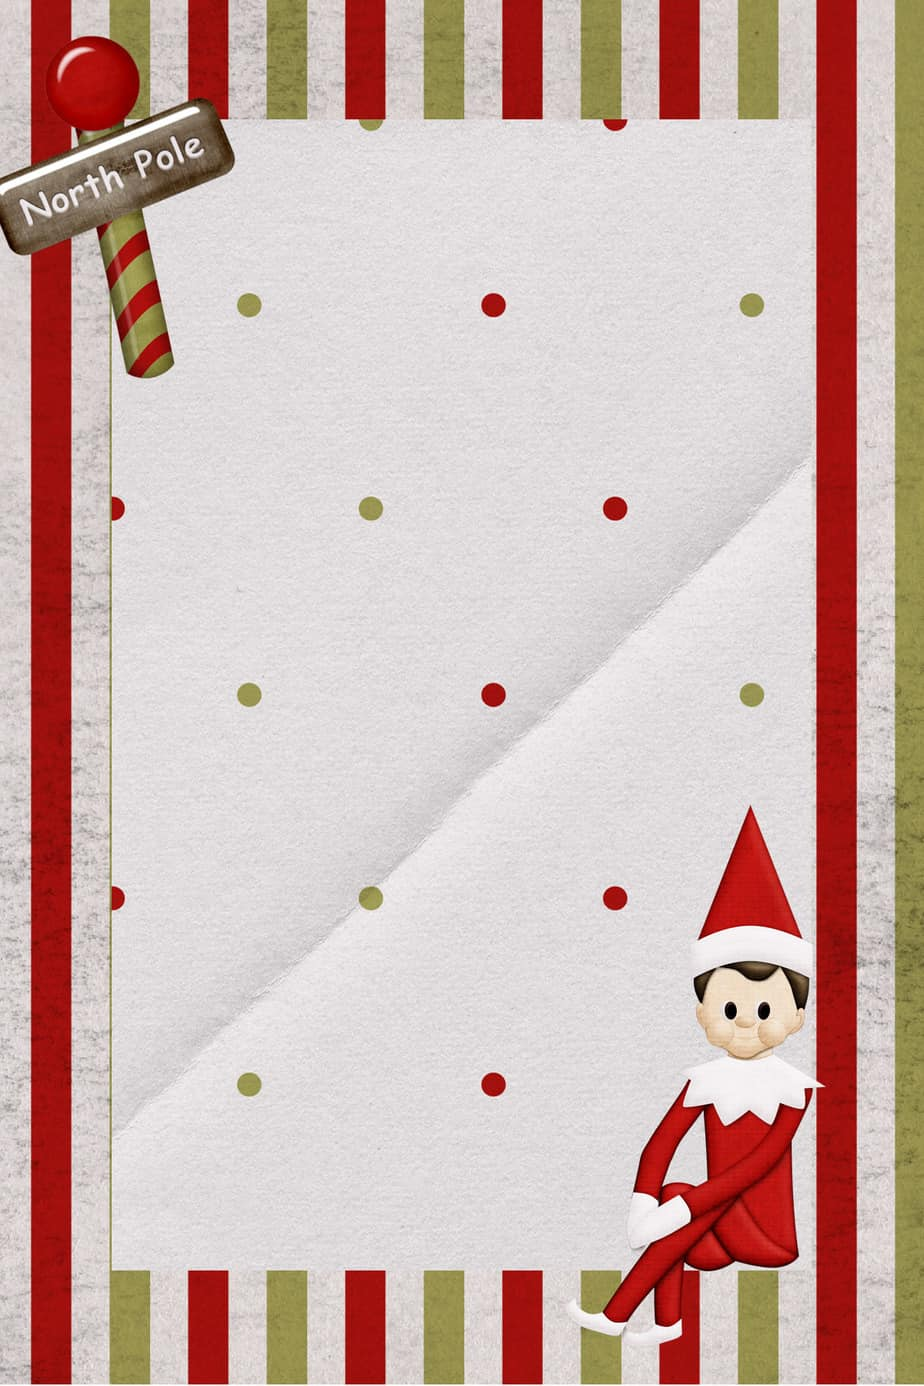 1200 x 1800 jpeg 440kB, Elf On The Shelf Pictures To Print | New ...